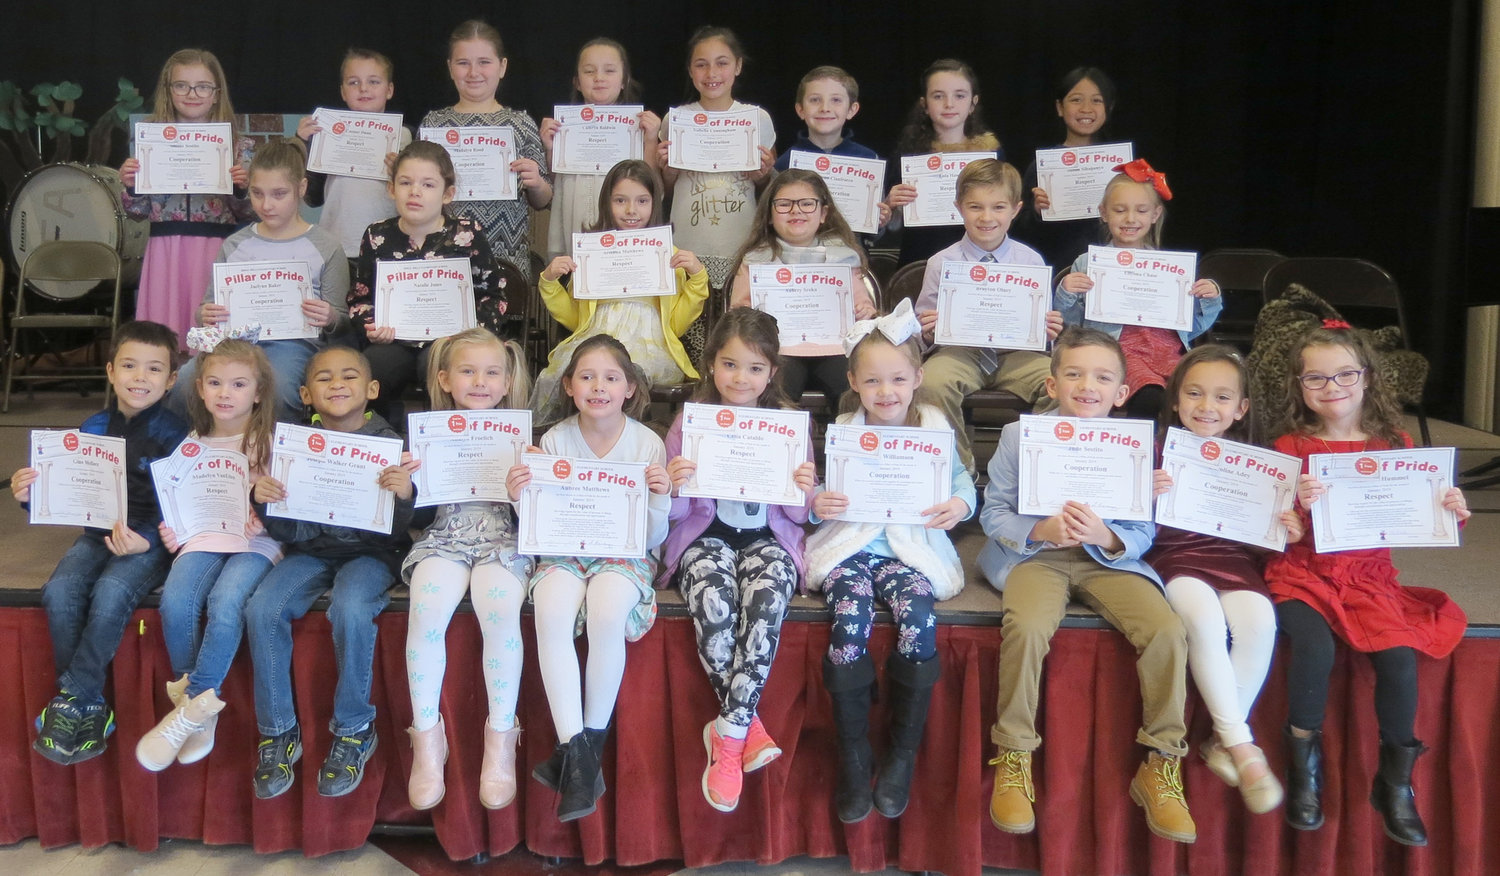 PILLARS OF PRIDE — Ridge Mills Elementary School honored students who exhibited the character values of cooperation and respect during a ceremony on Jan. 17. Among those students from kindergarten through third-grade recognized were, from left:  Front row: Gino Mellace, Madelyn VanEtten, Joseph Walker Grant, Adalyn Froelich, Aubree Matthews, Celia Cataldo, Maya Williamson, Jude Sestito, Caroline Adey, Madelyn Hummel; middle row:  Jaelynn Baker, Natalie Jones, Arianna Matthews, Aubrey Sroka, Brayton Olney, Ellyonna Chase; and back row: Sloane Sestito, Connor Dunn, Madalyn Rood, Camryn Baldwin, Isabella Cunningham, Tyler Cianfrocco, Lola Hand and Julian Sihapanya.